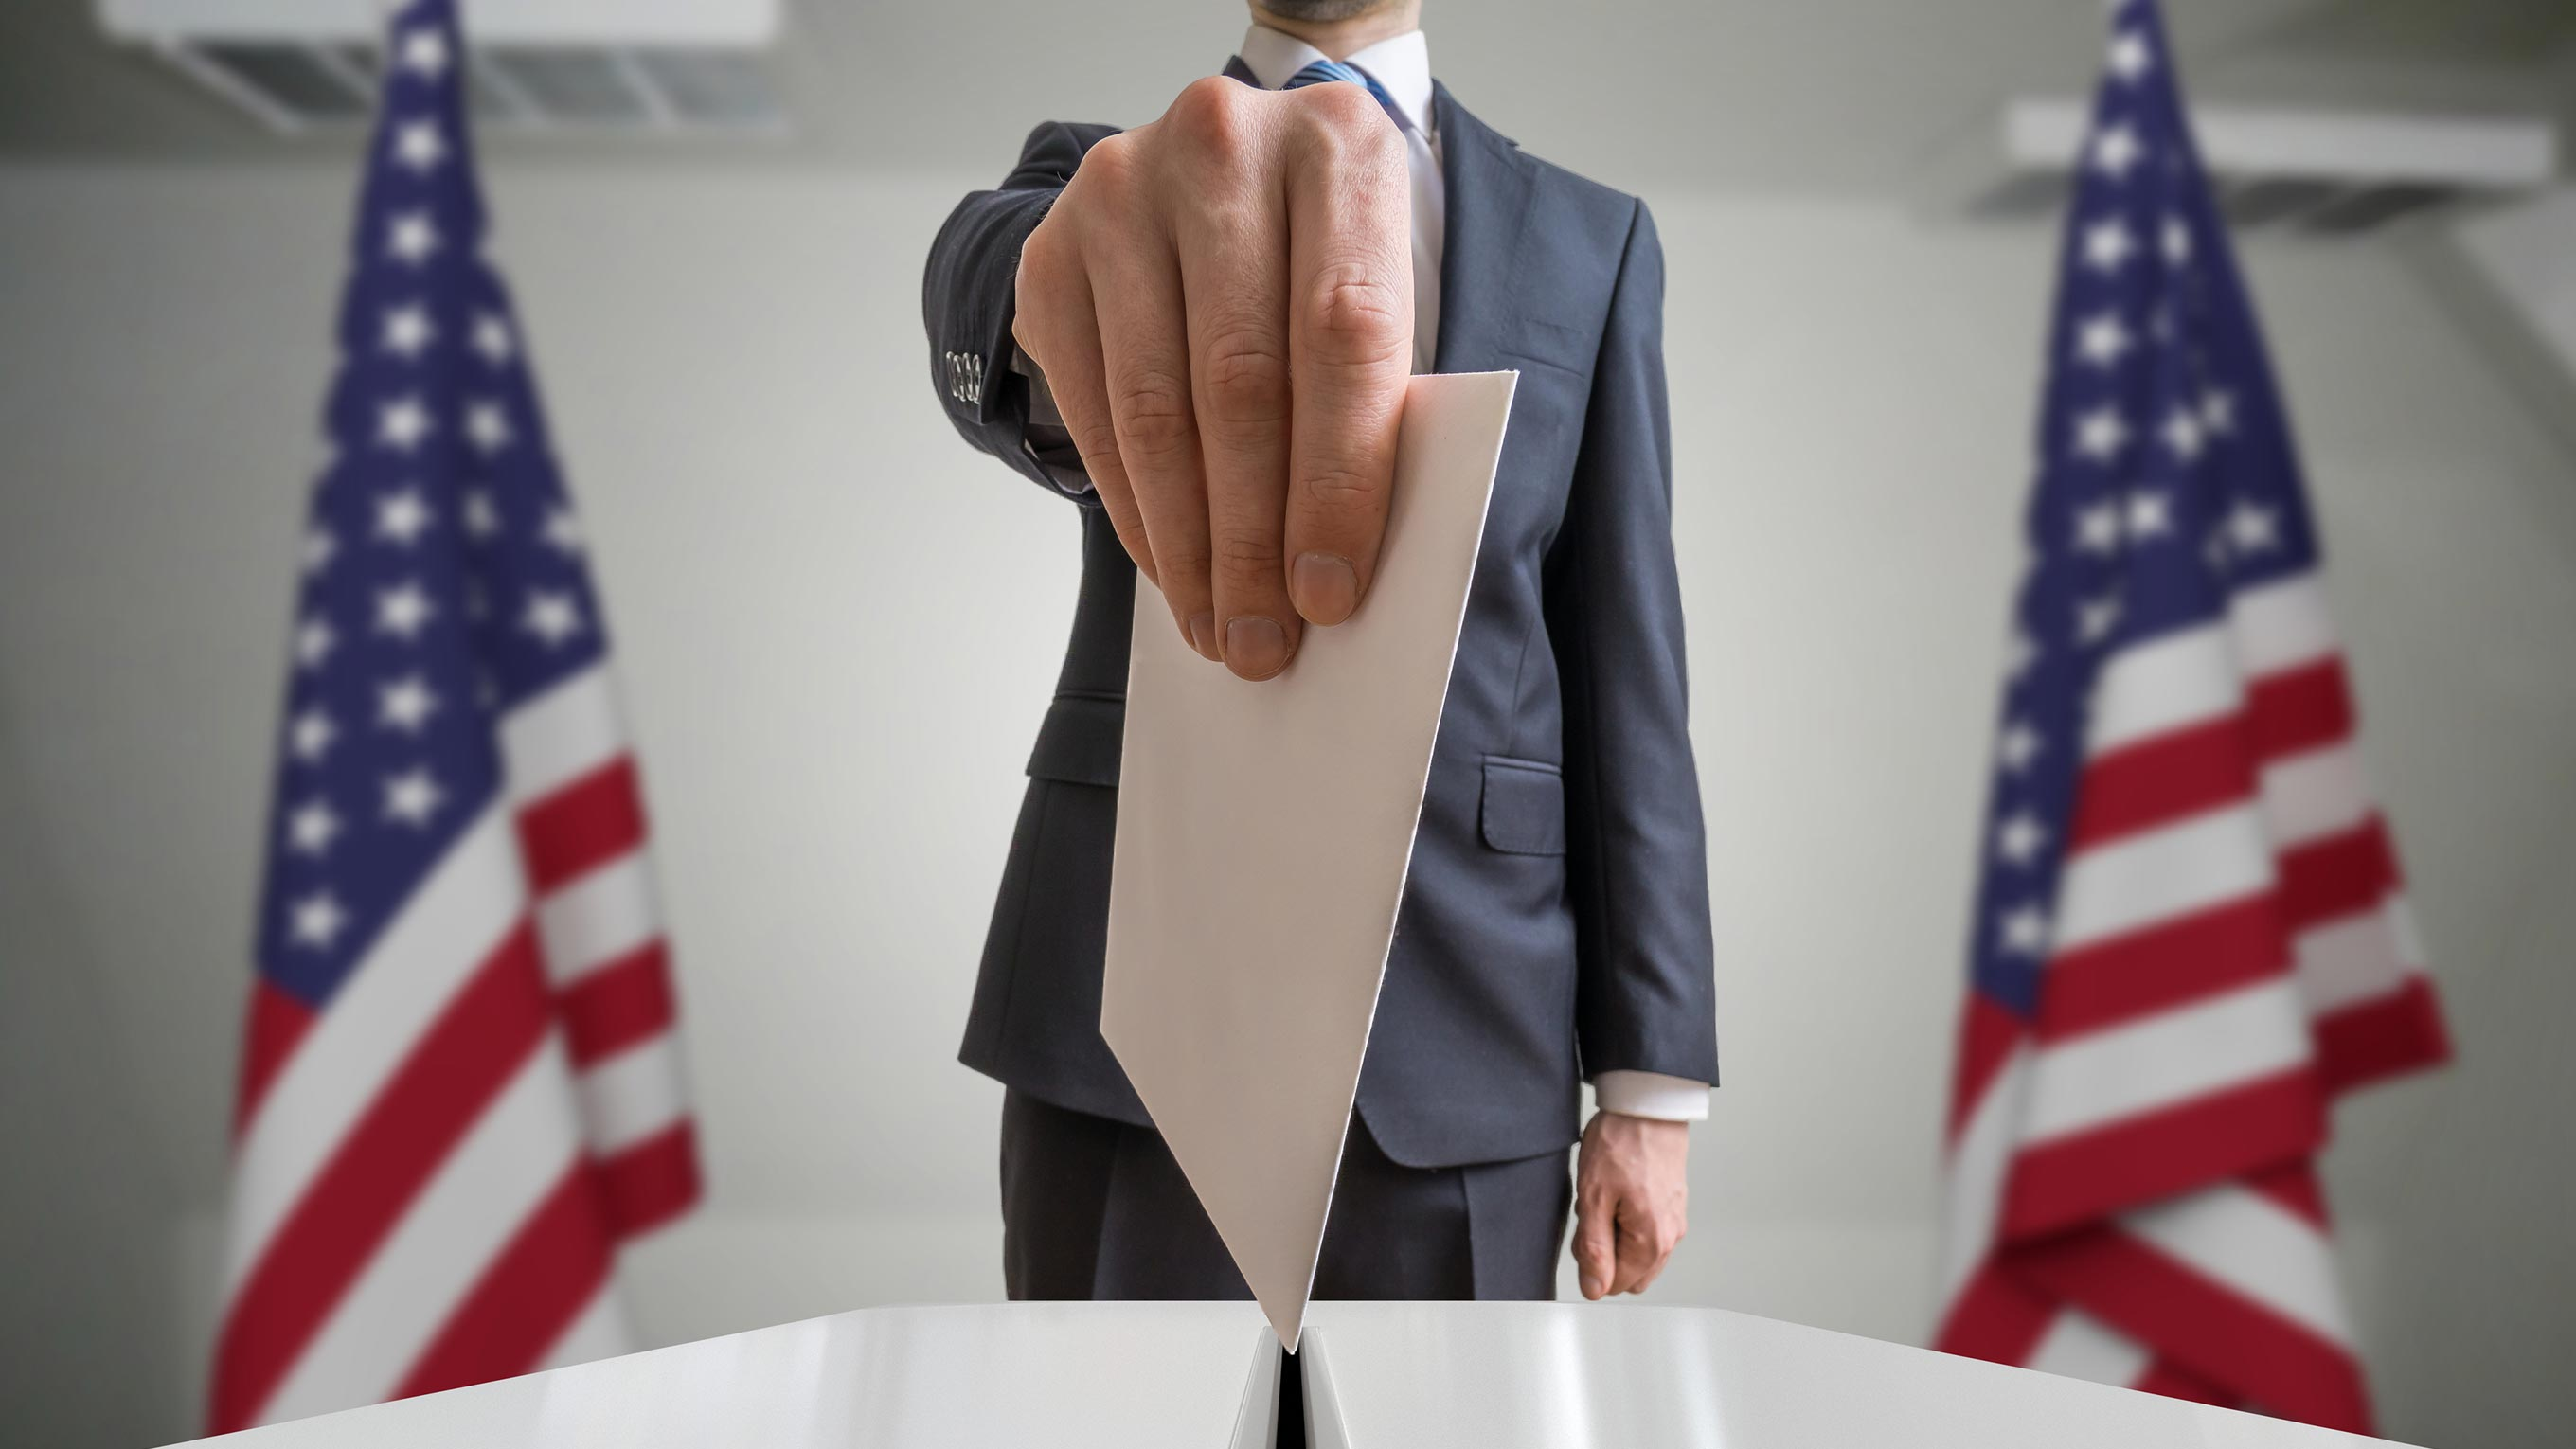 US political mess: Five lessons from Emerging Markets on disputed elections